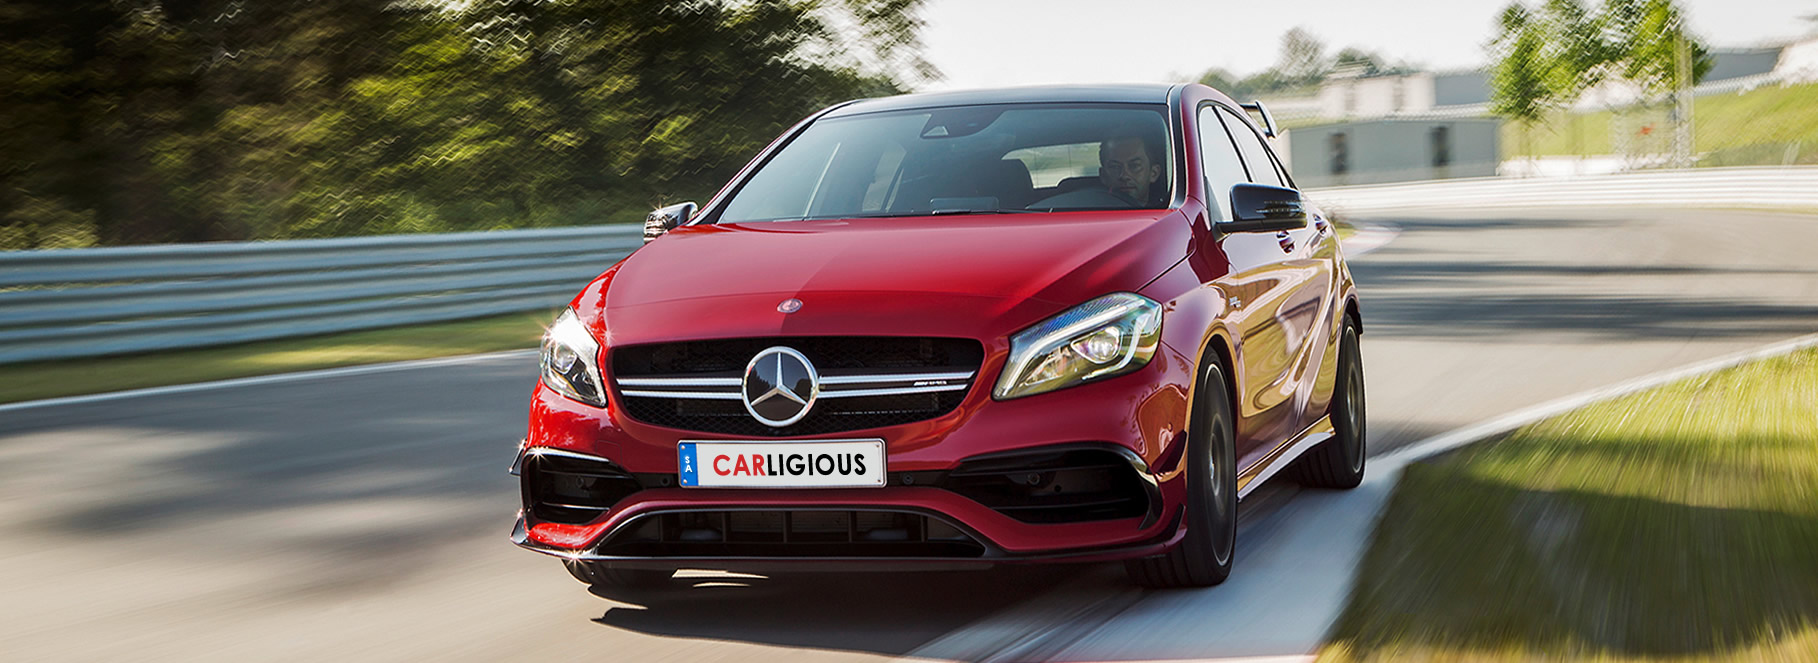 2013-2015 Mercedes-Benz A45 AMG Auto 4MATIC